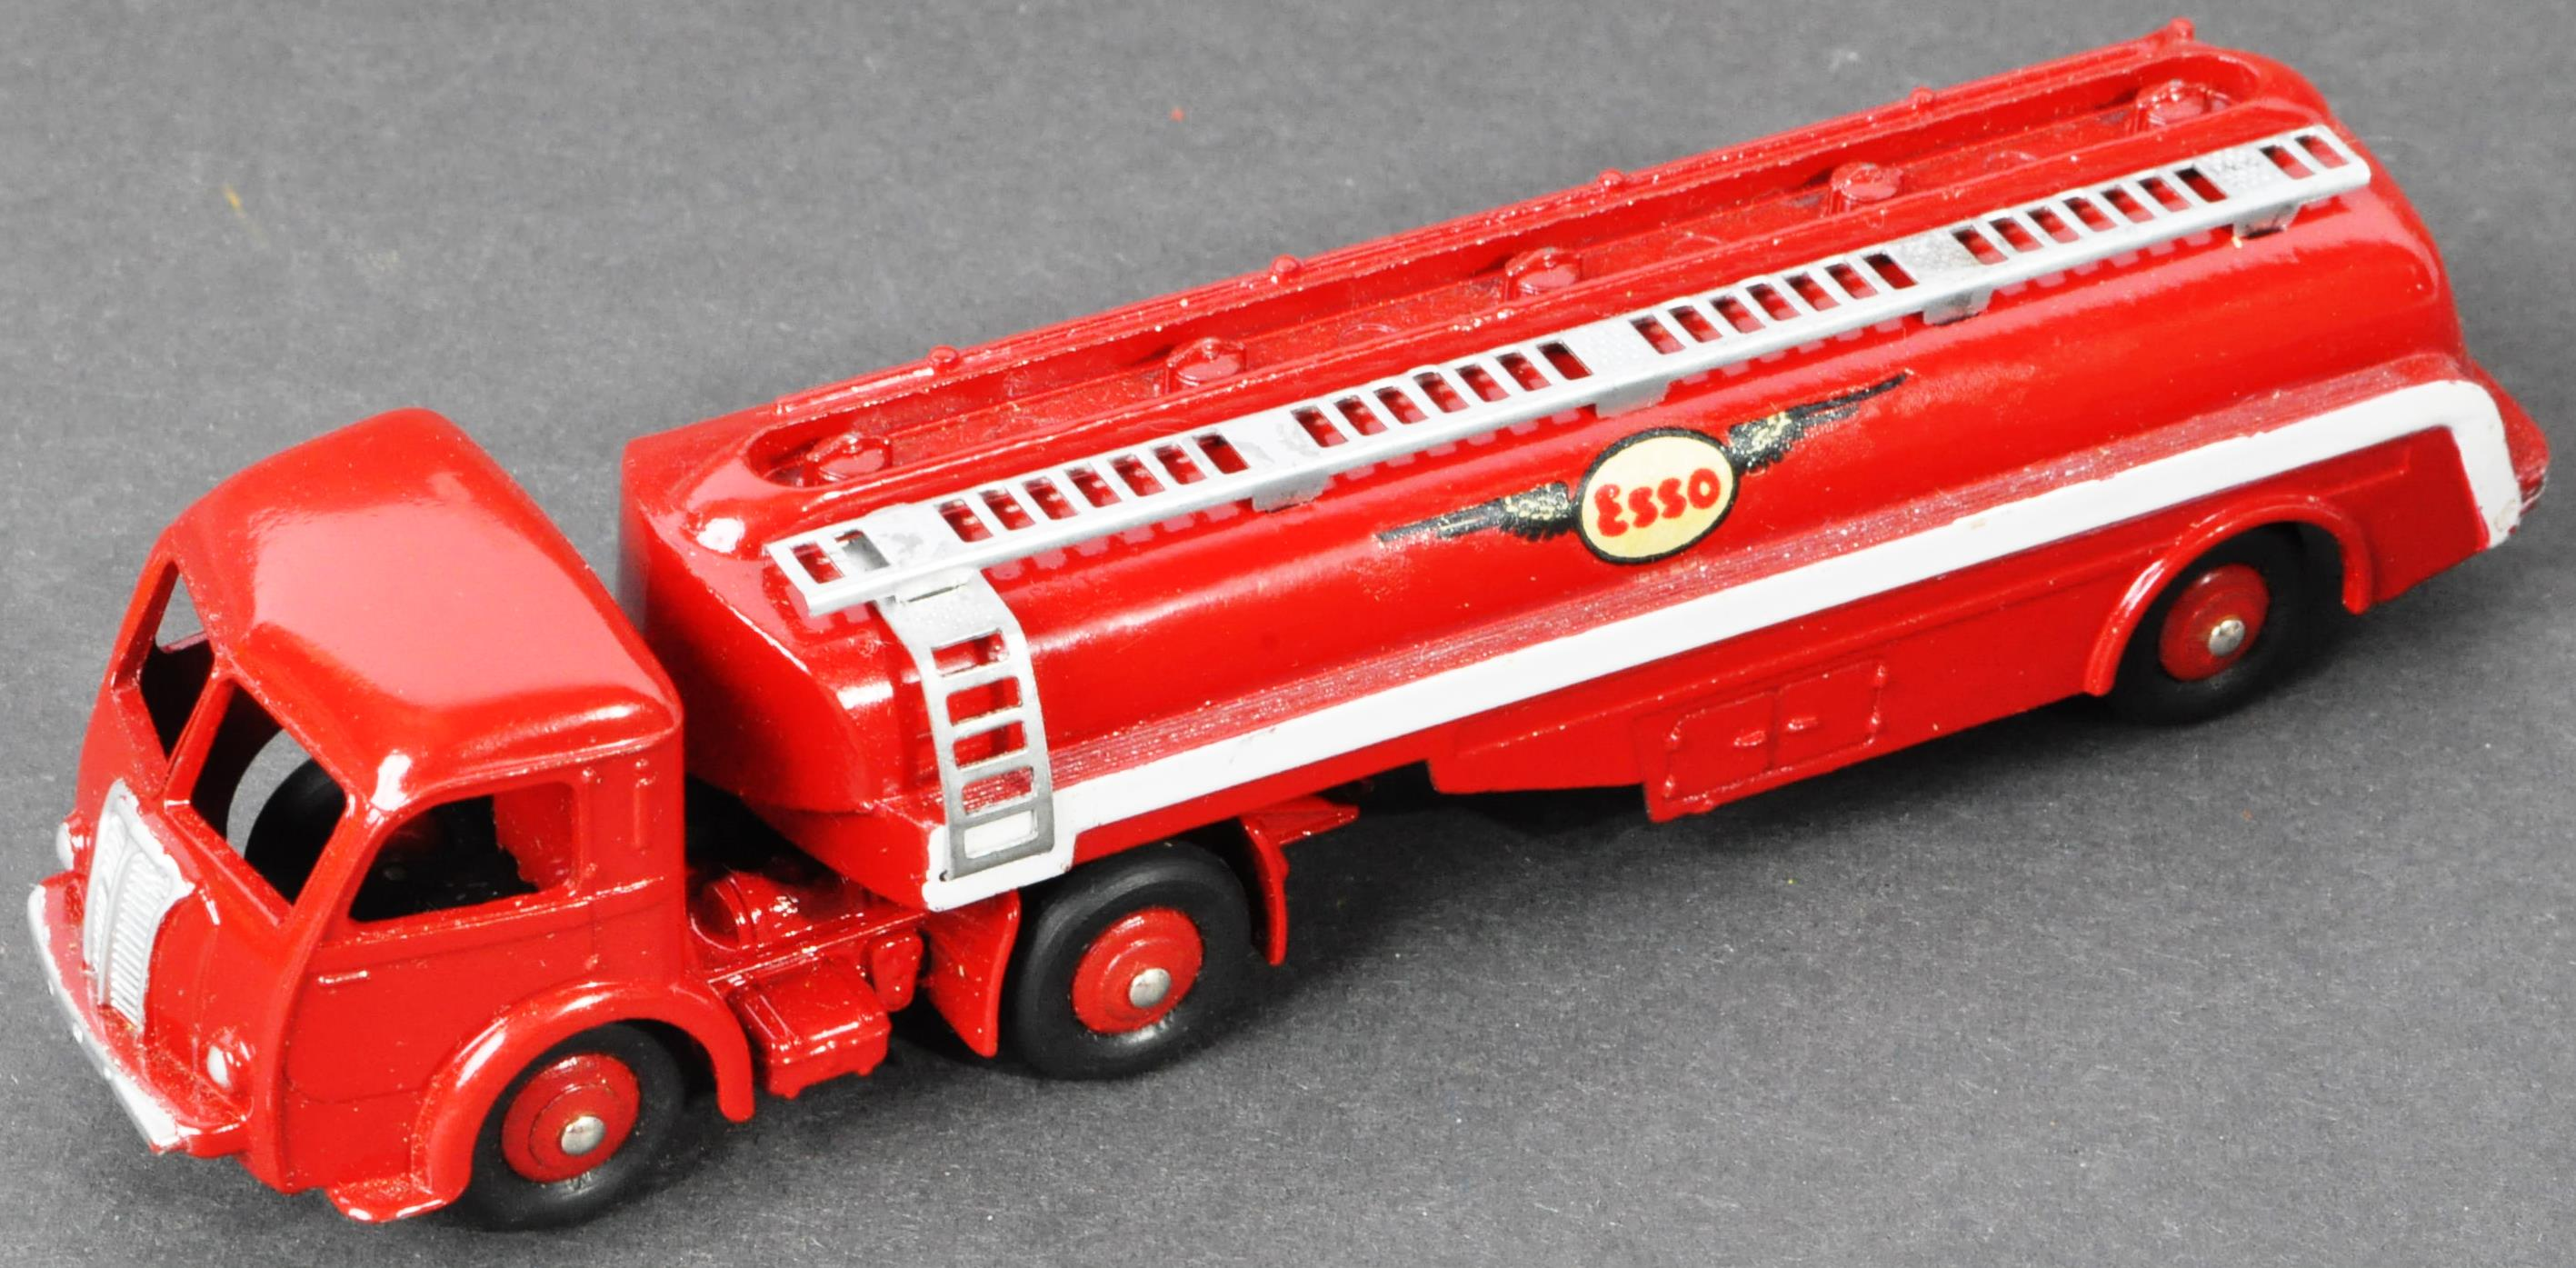 FRENCH DINKY TOYS - ORIGINAL BOXED VINTAGE DIECAST MODEL - Image 3 of 7